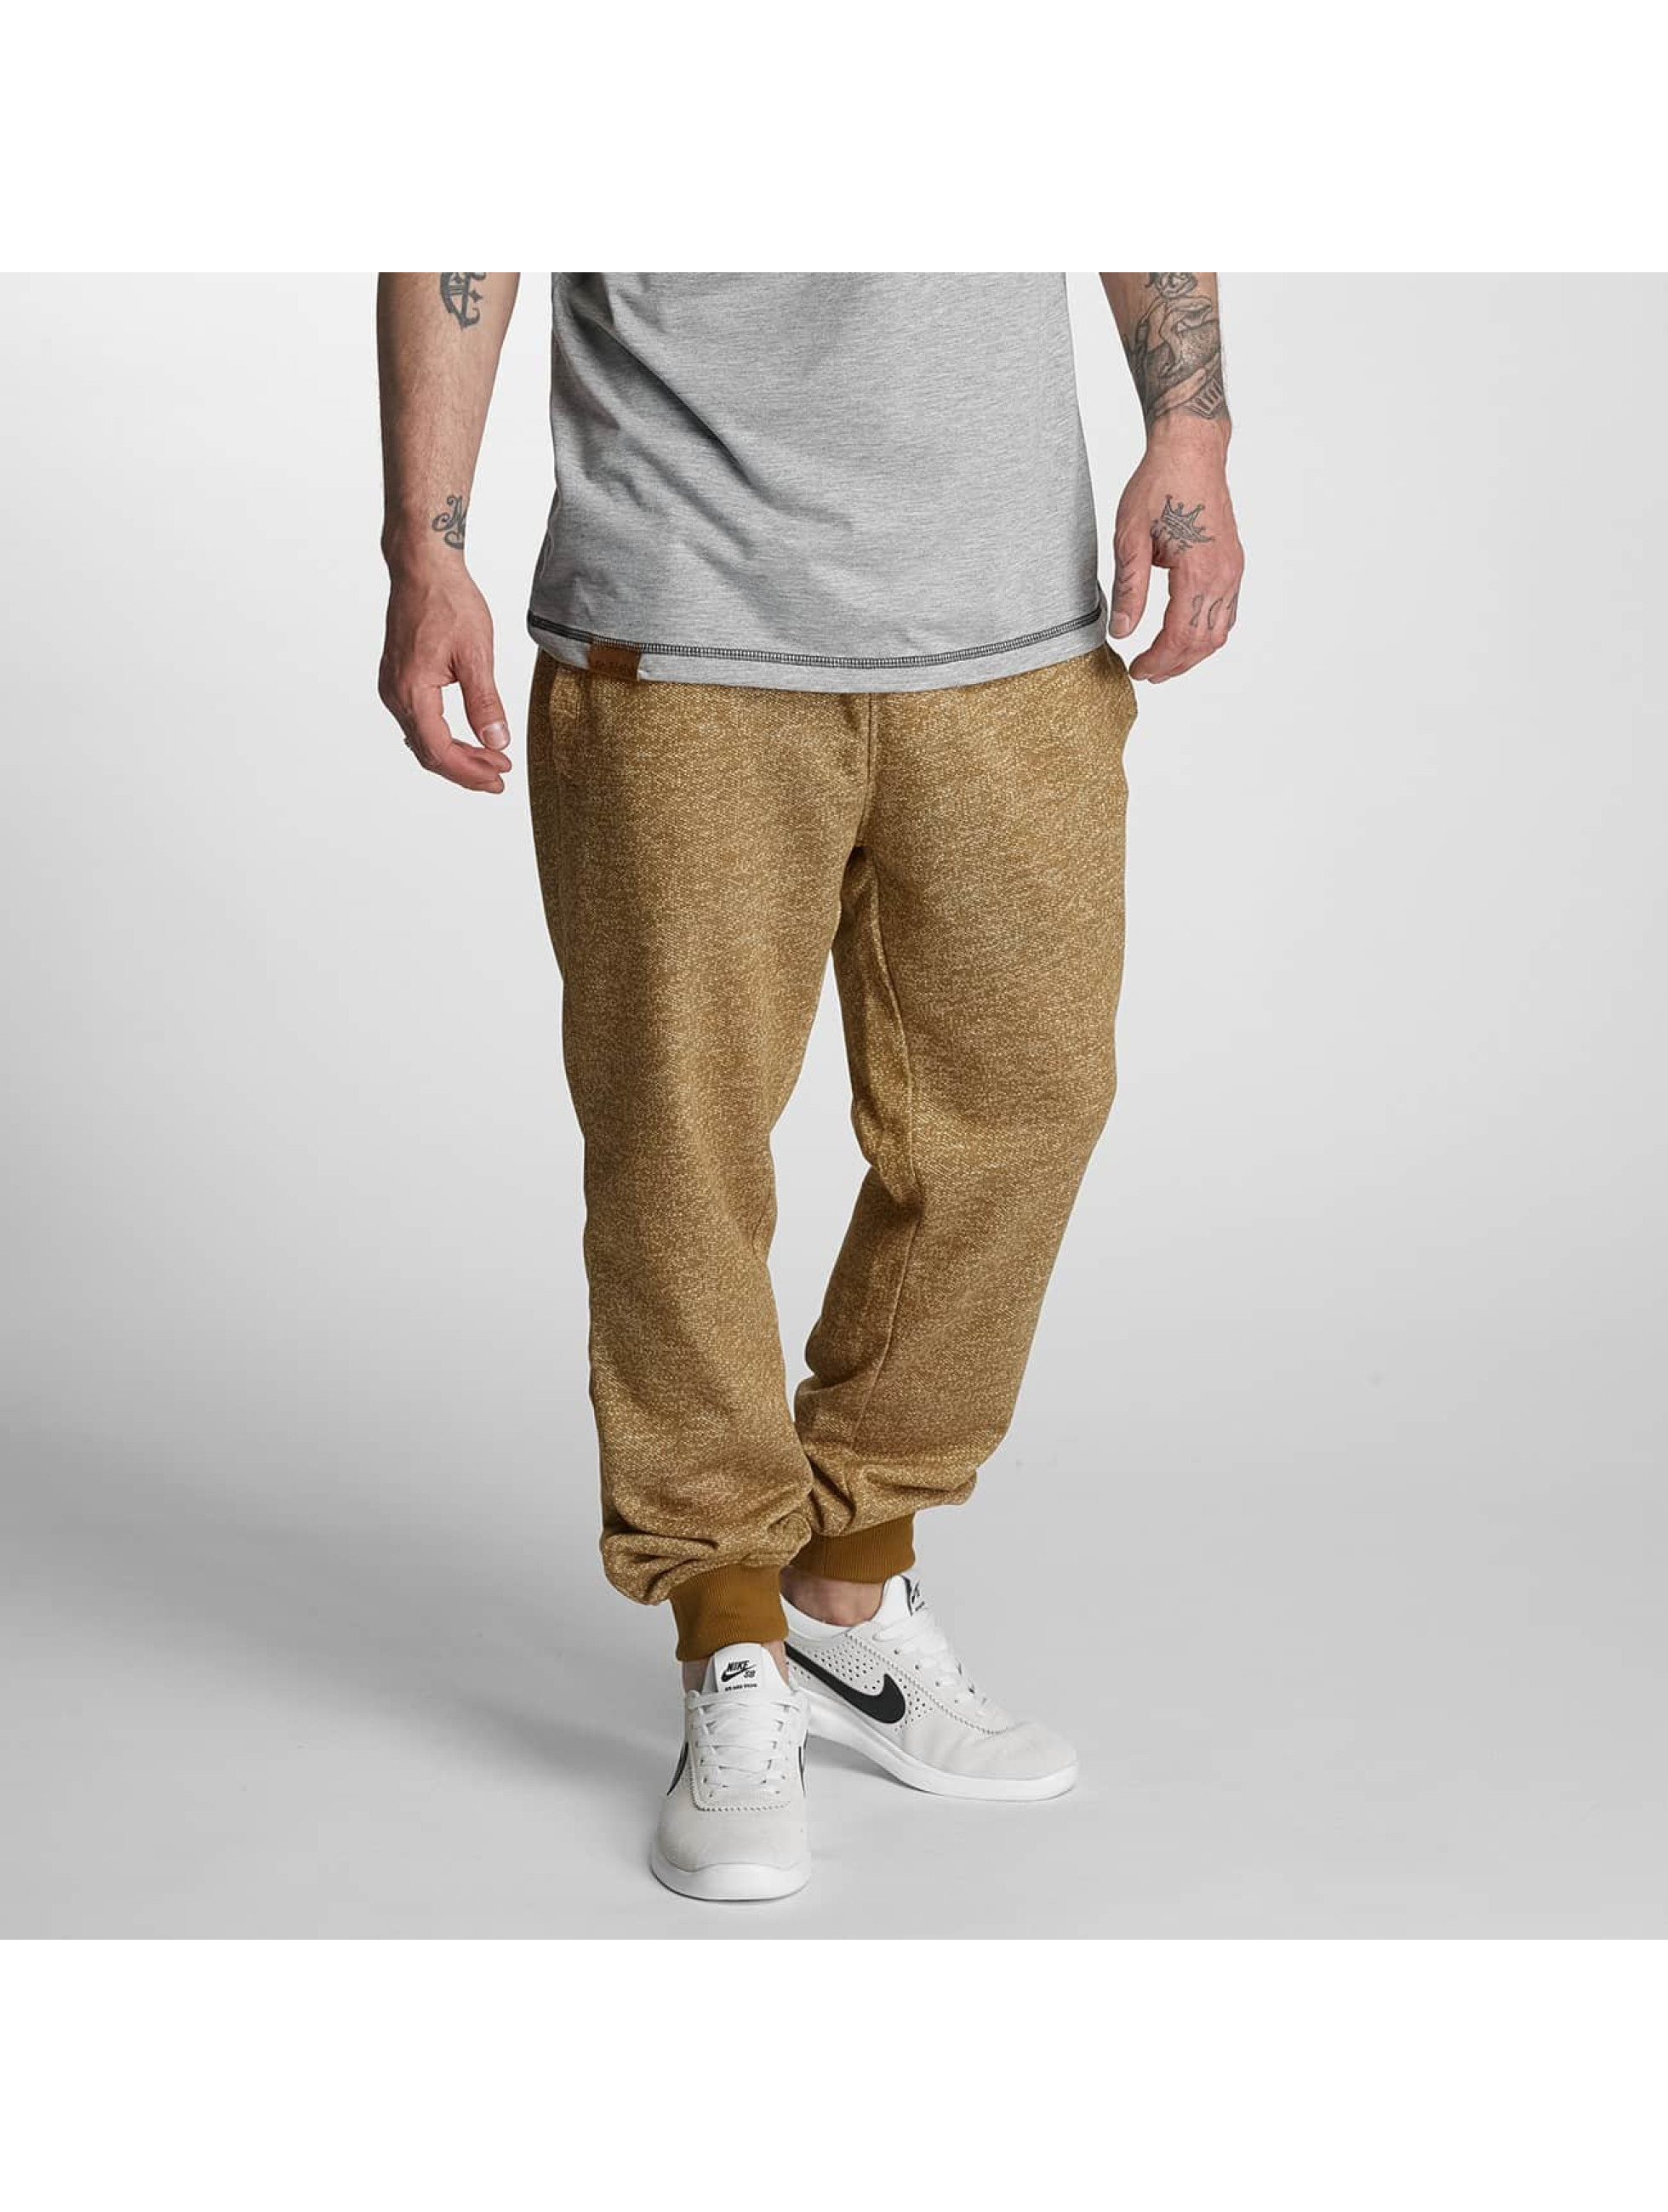 Southpole Joggingbukser Sweat beige